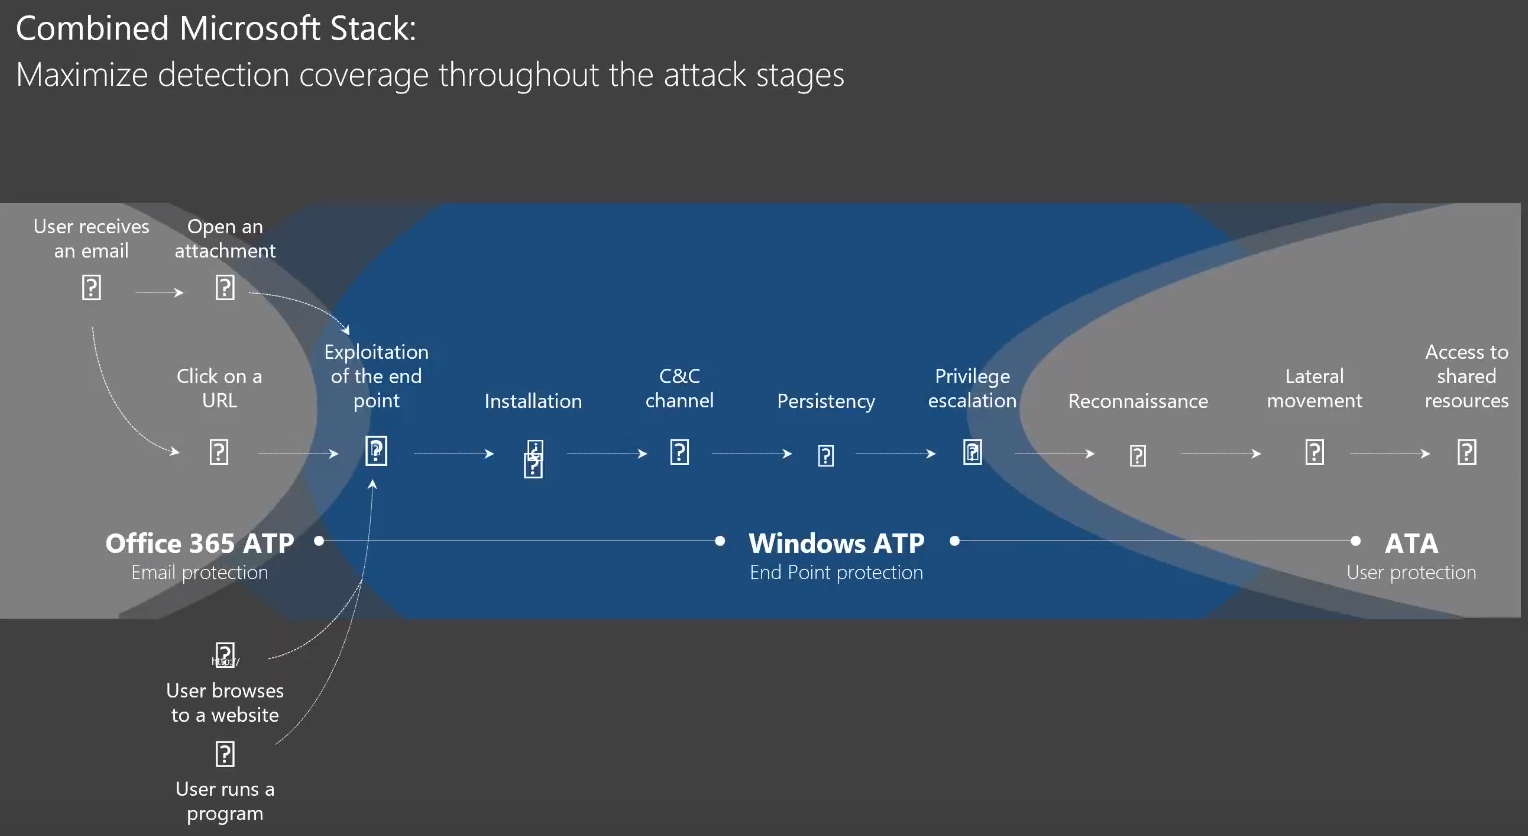 Copmbined Microsoft Security Stack